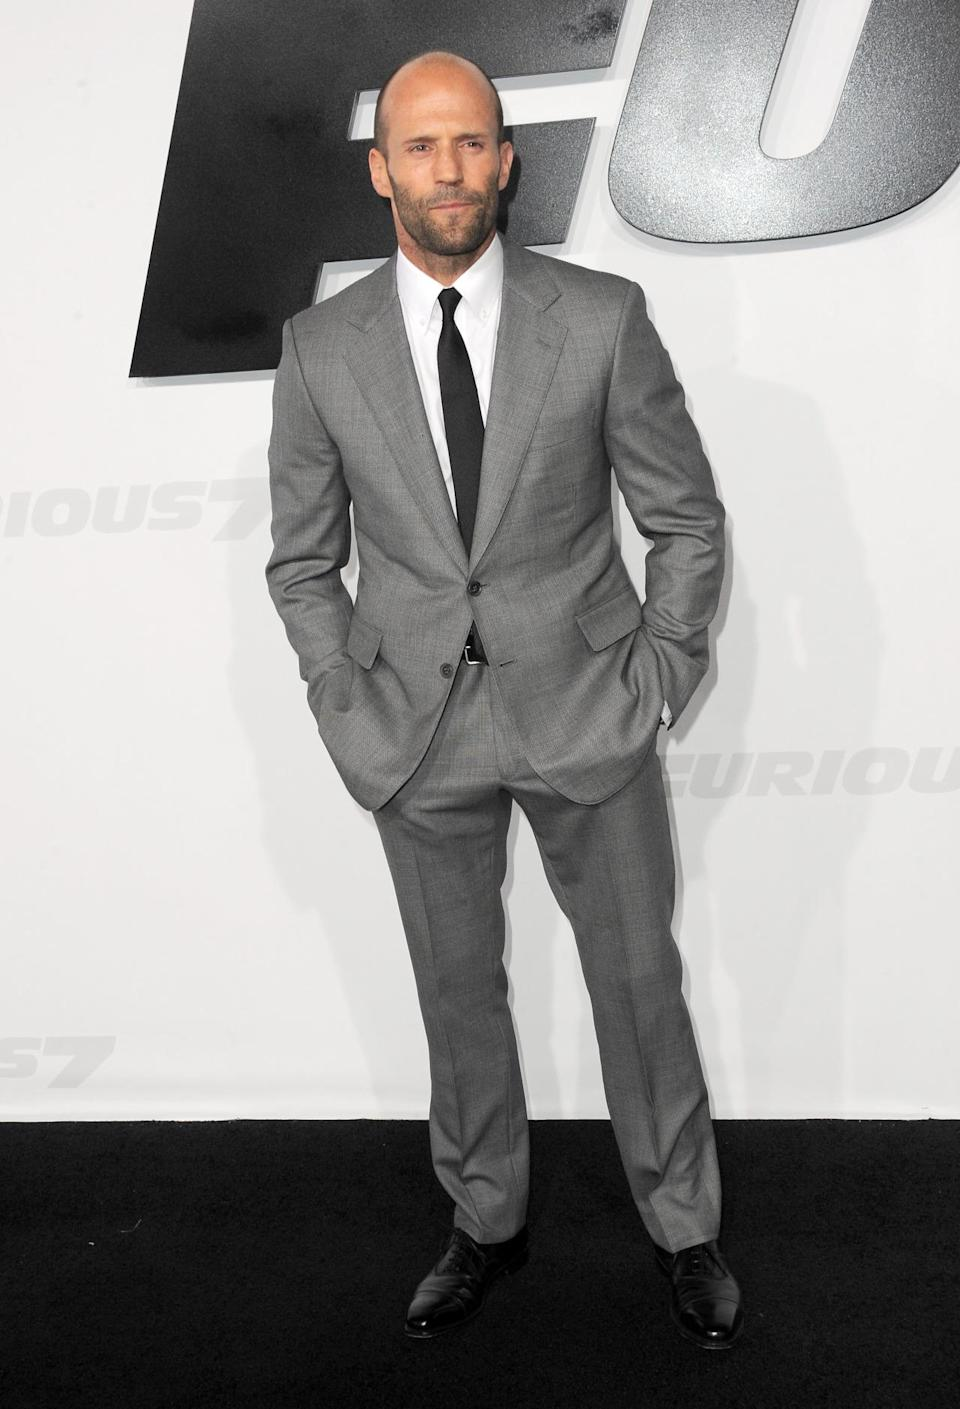 """The eternal action star showed up to the """"Furious 7"""" premiere in a gray suit and black tie that would most likely get the seal of sartorial approval from his lady love Rosie Huntington-Whiteley."""